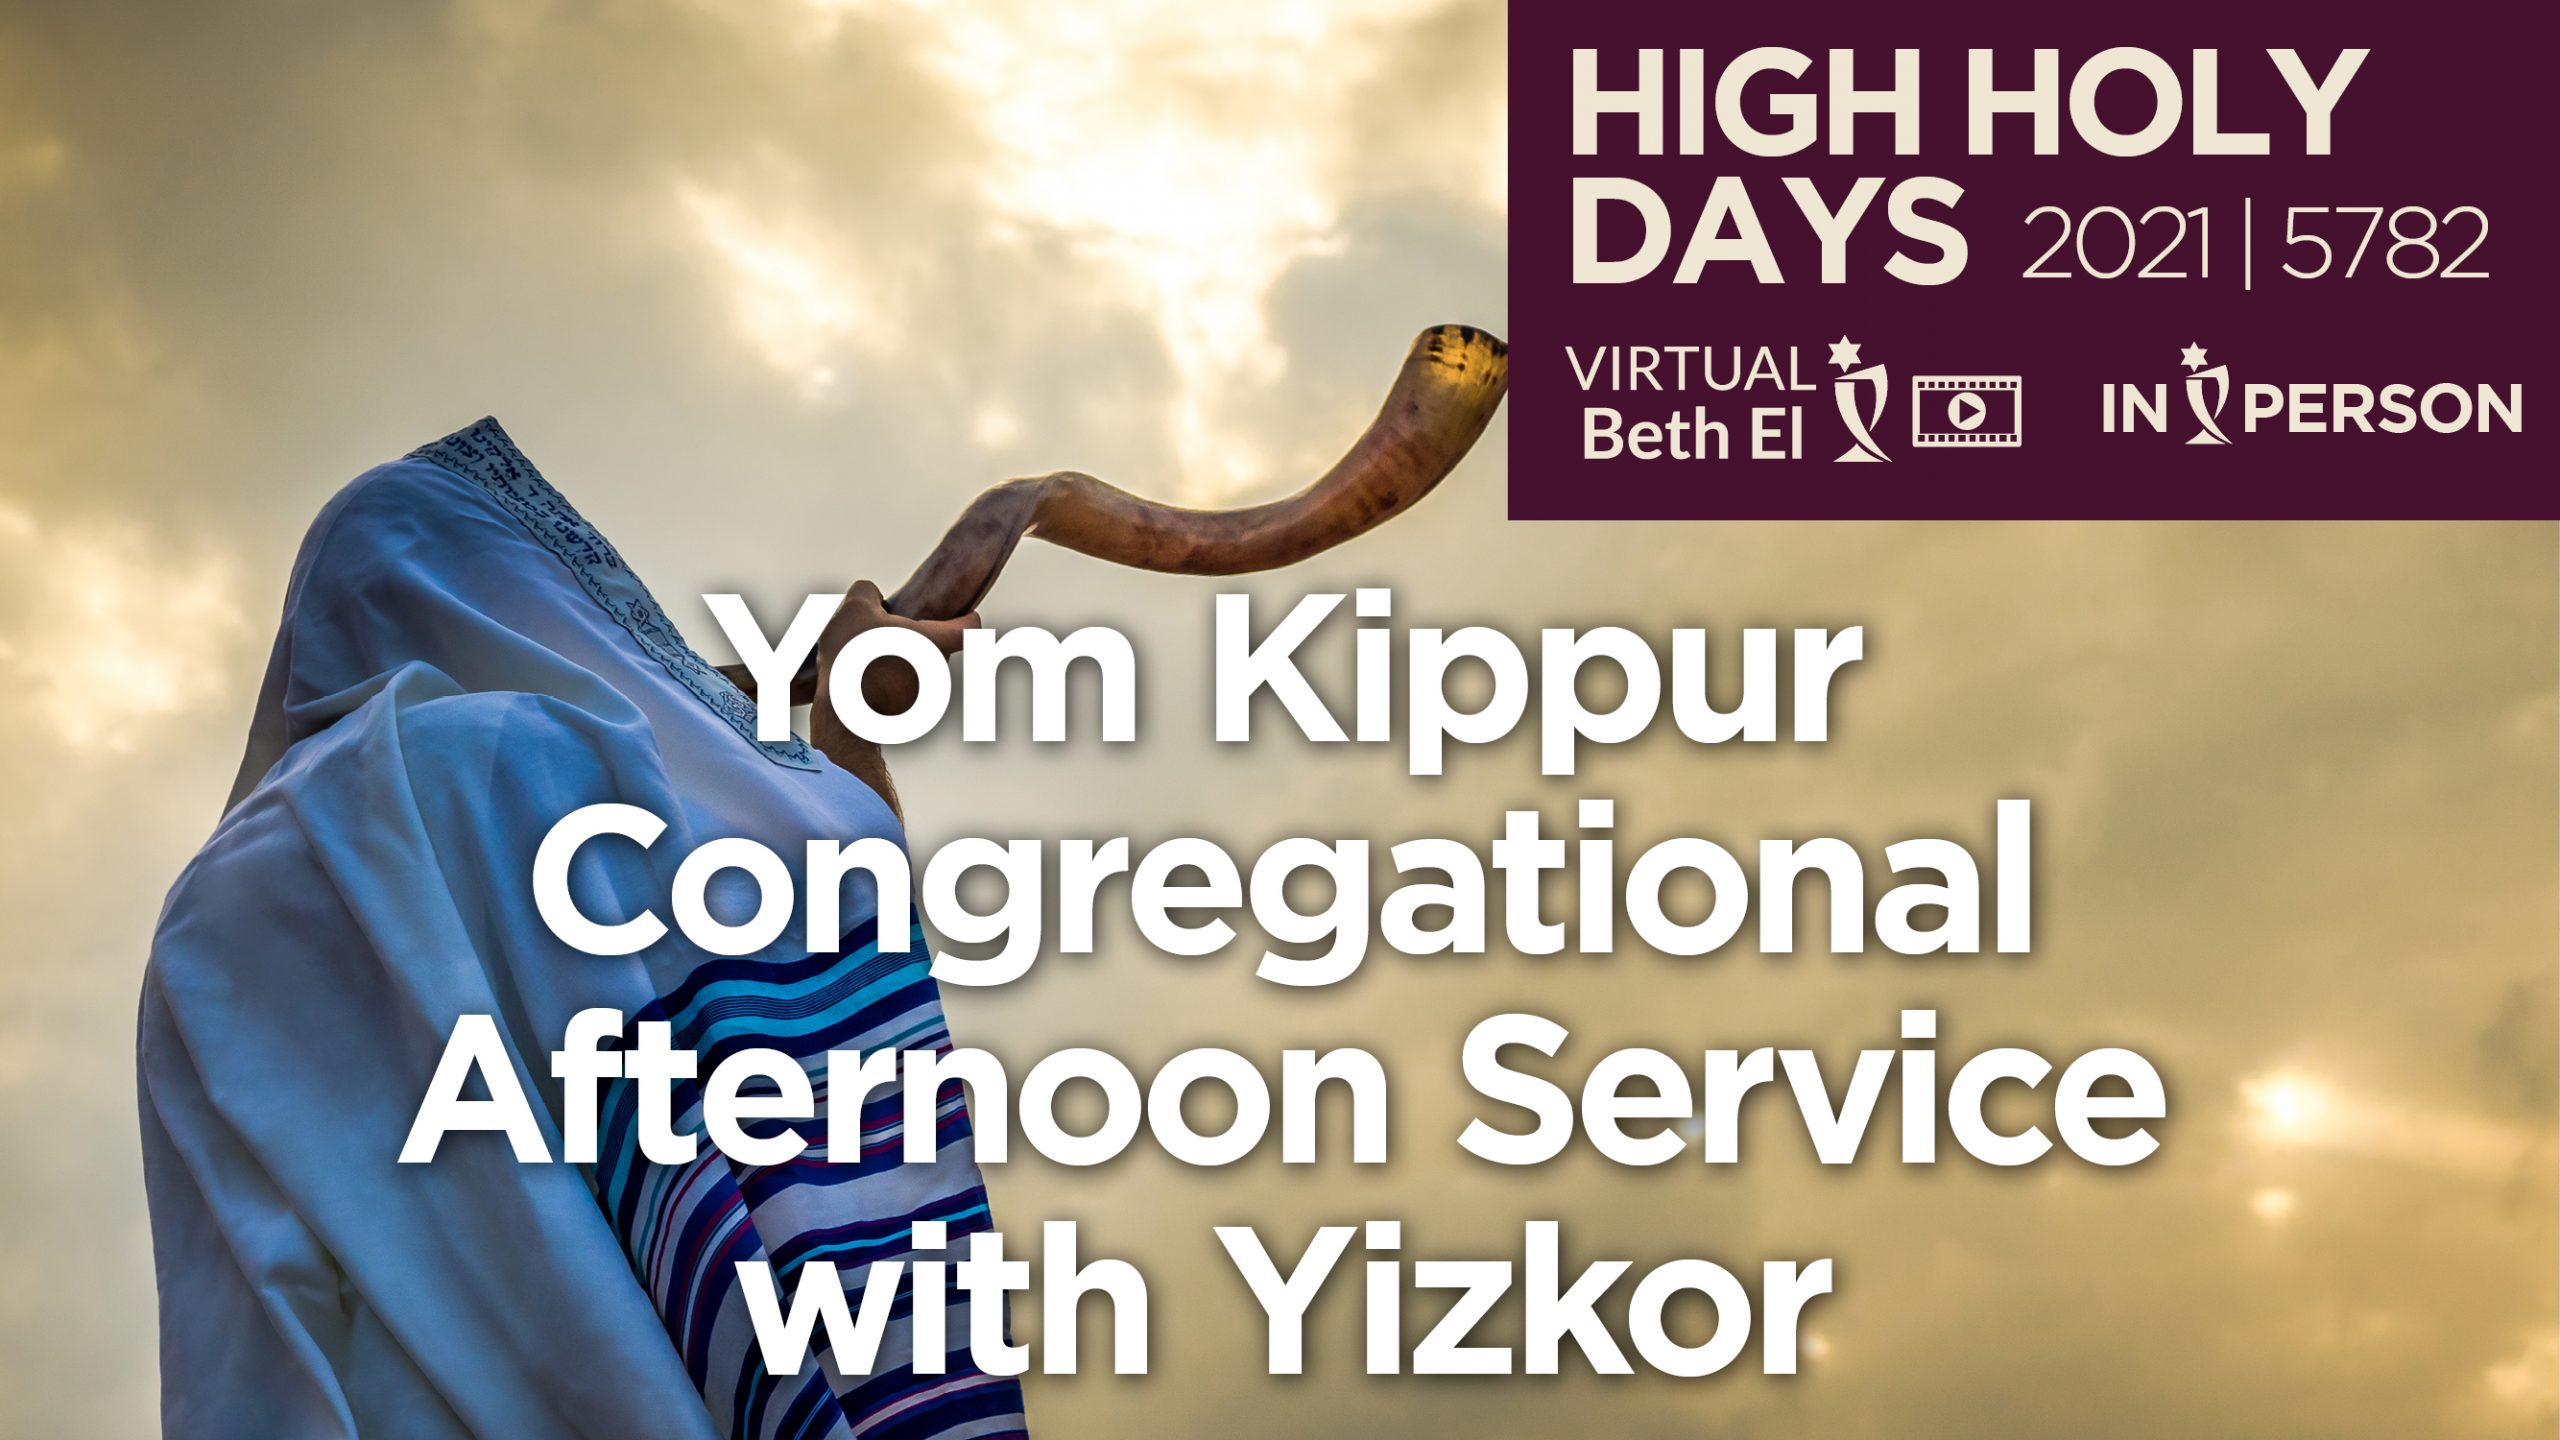 Yom Kippur Afternoon Services with Yikzor Announcement Graphic for 2021 5782